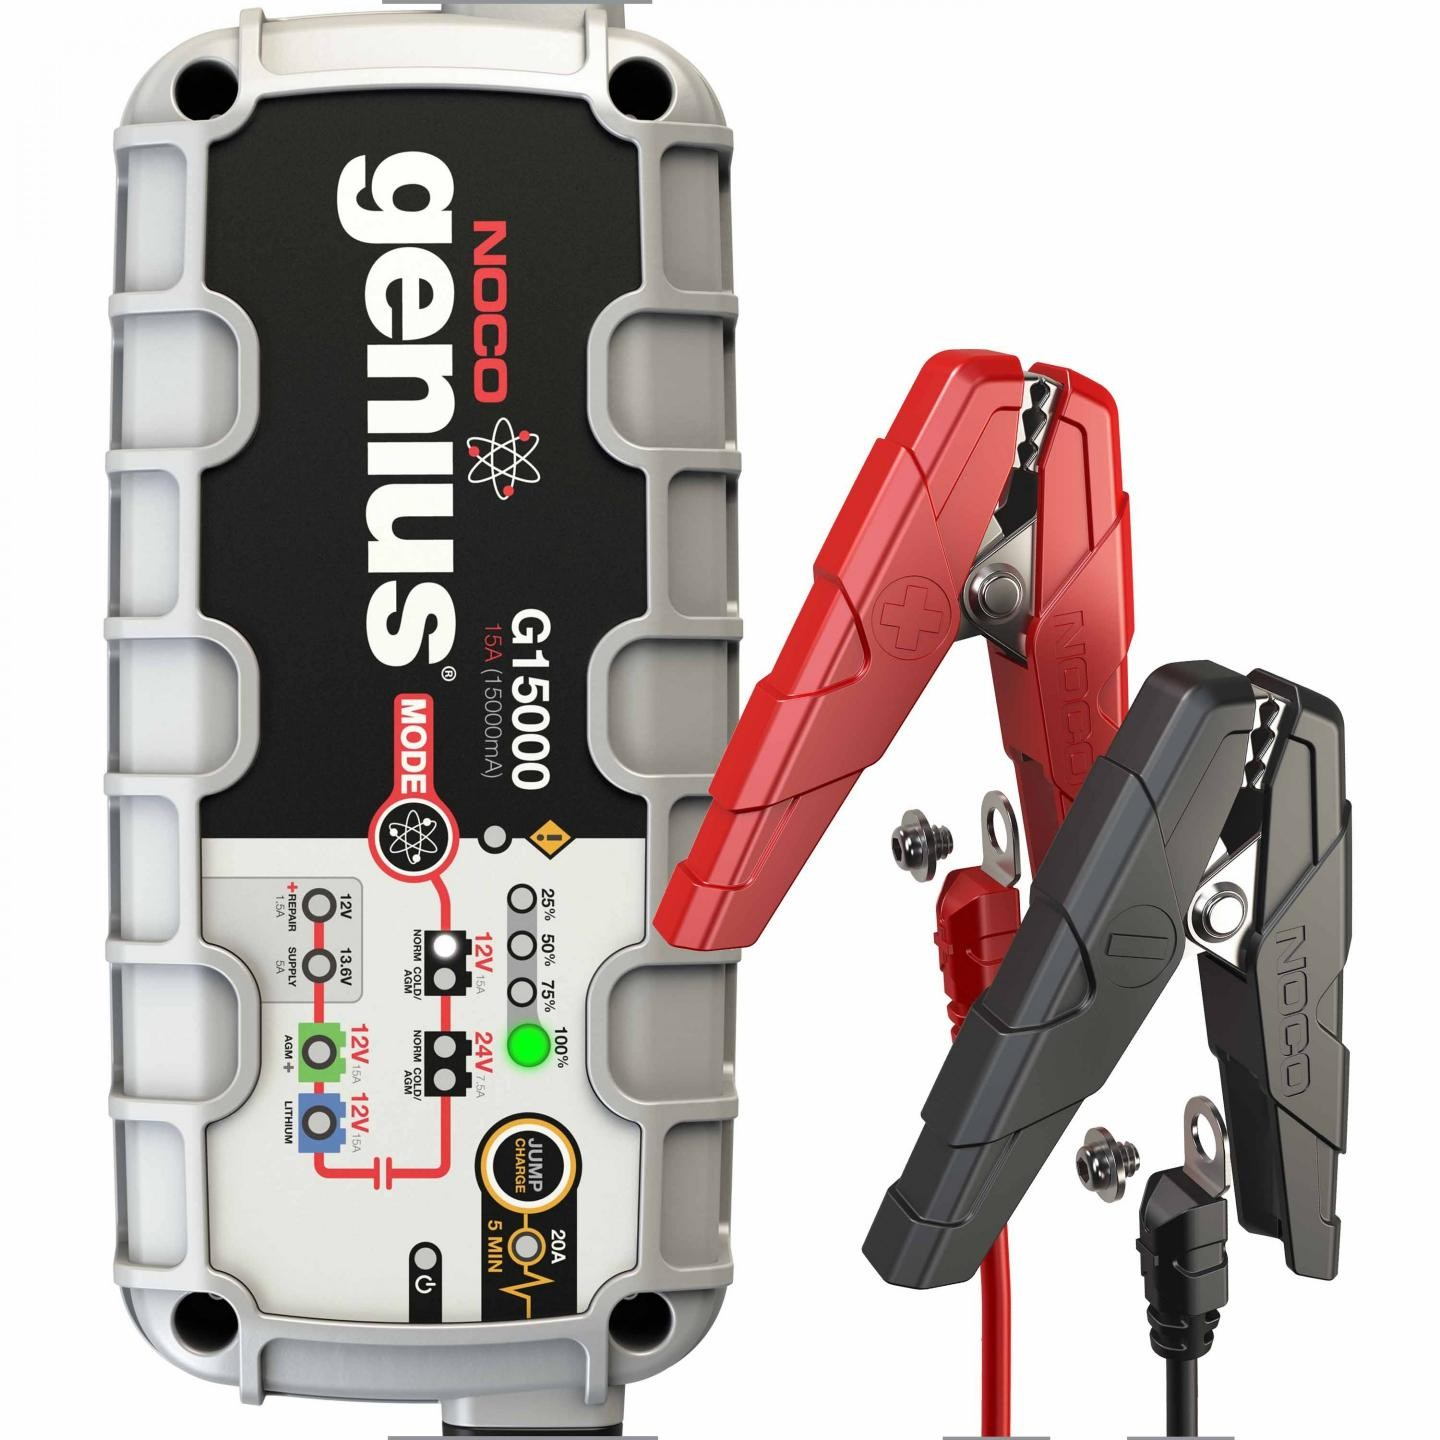 Noco 15a Battery Charger With Engine Start G15000 Multiple 12v Batteries In Parallel To Increase The Amp Rating Diagram 24v Ultrasafe Jumpcharge